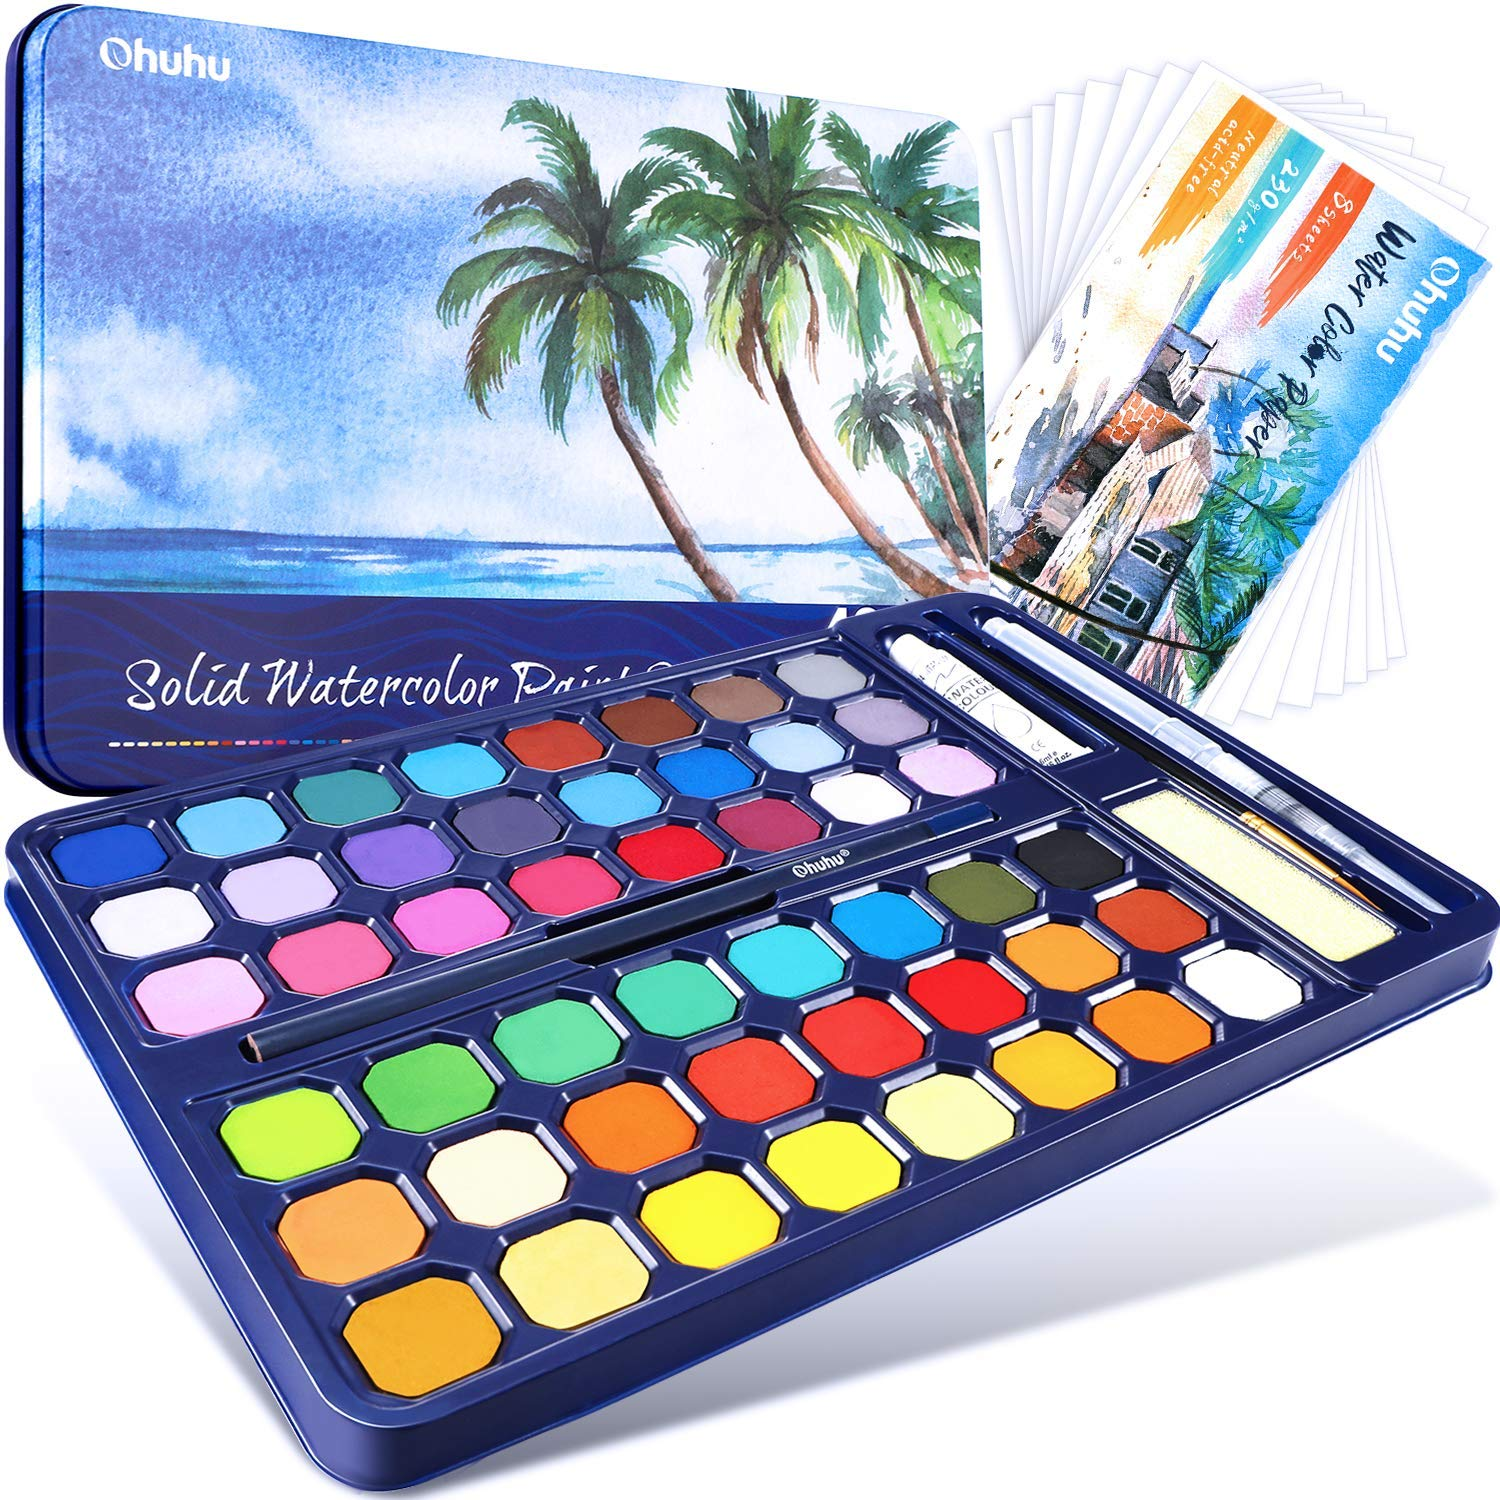 20% OFF - Ohuhu 48 Colors Watercolor Palettes Paint Set for Artists, Kids, Beginner, Student